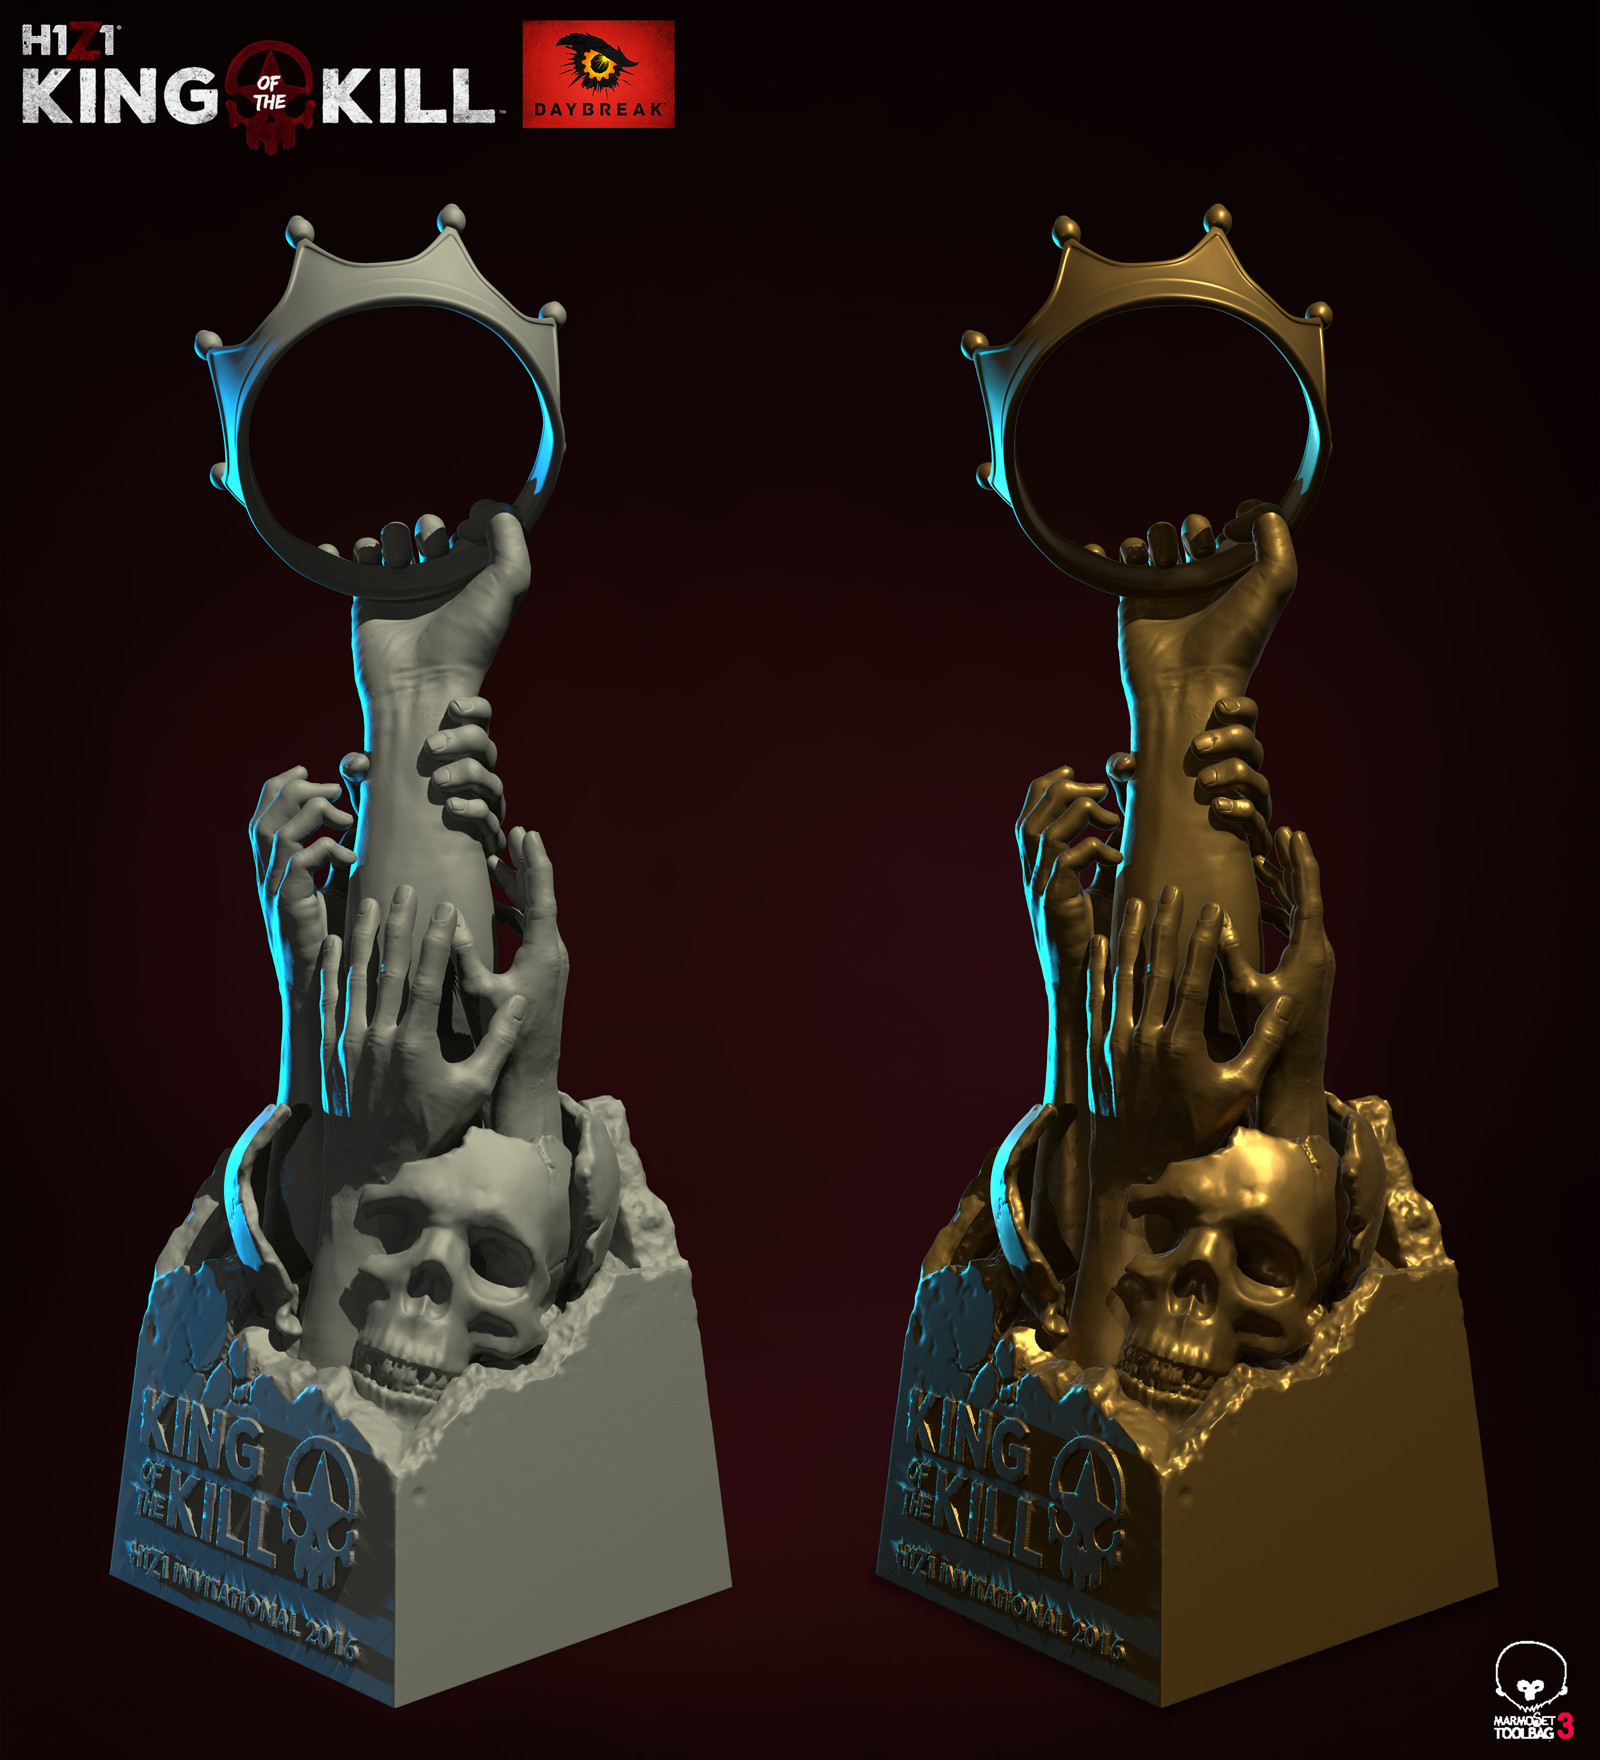 H1Z1 King of the Kill Twitchcon Invitational Trophy